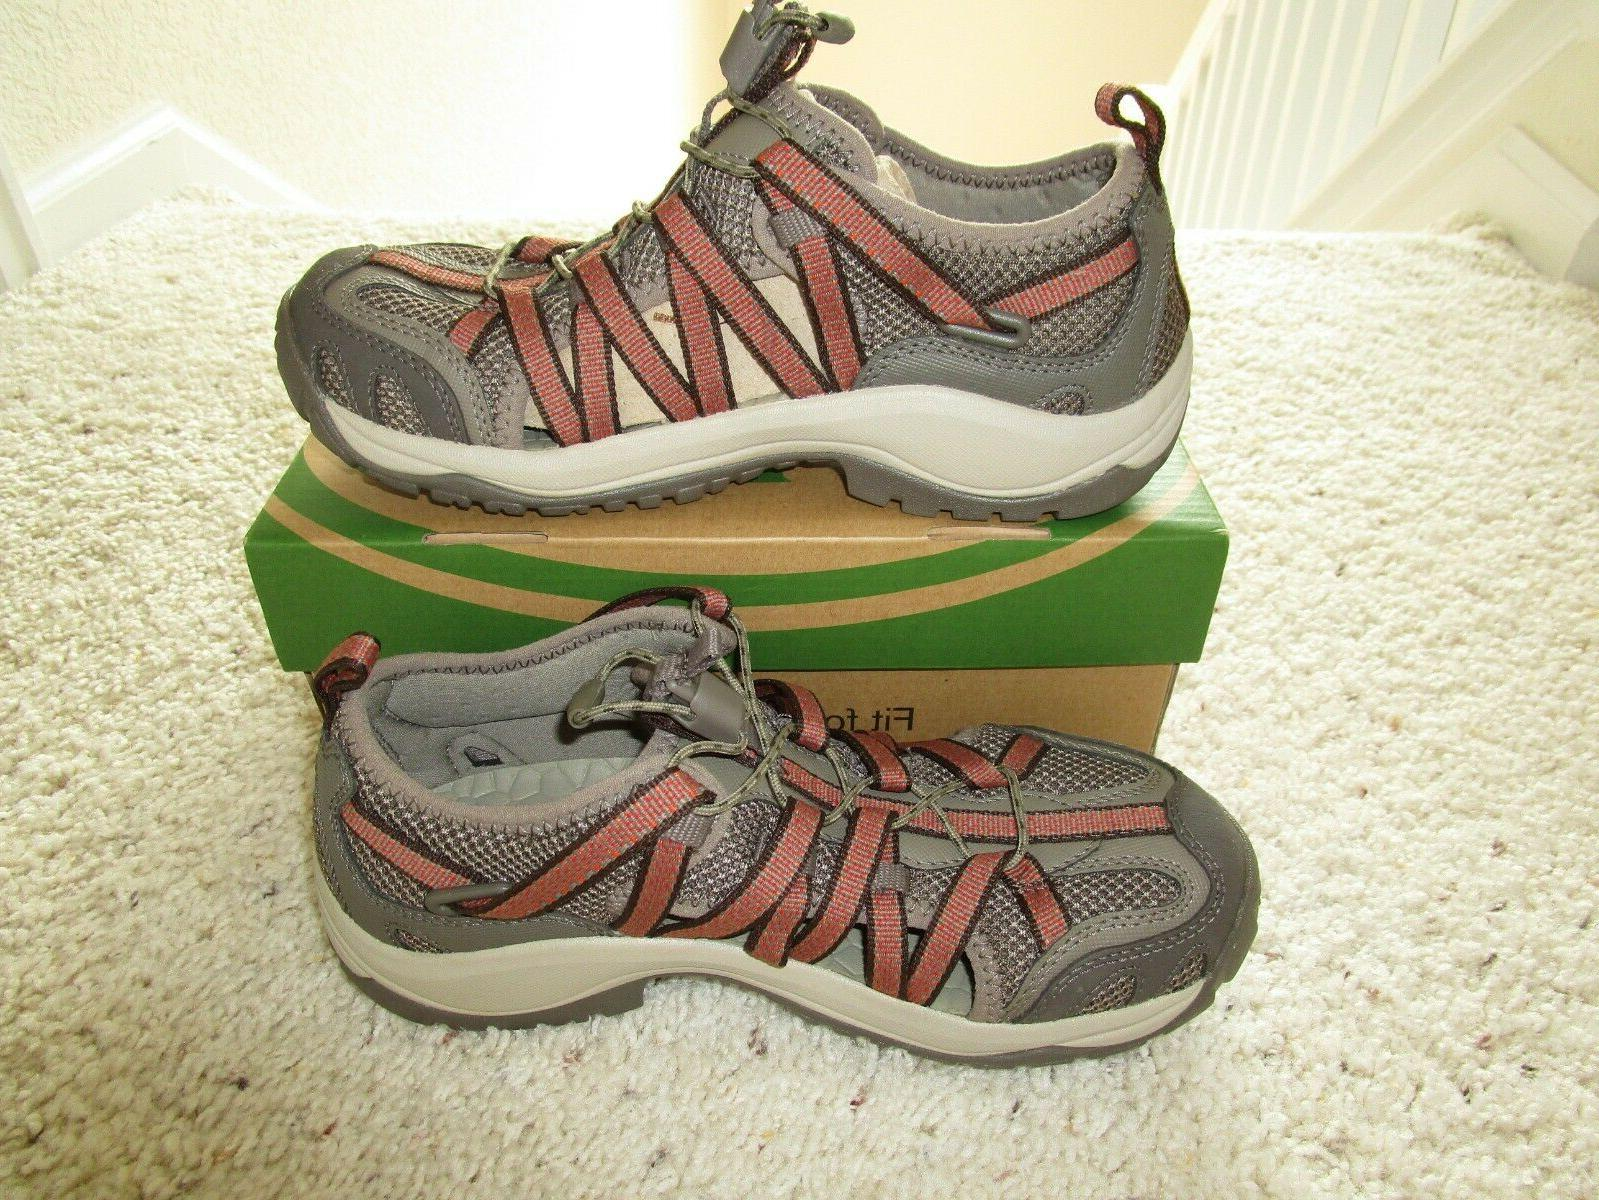 CHACO BUNGEE OUTCROSS HIKING SHOES